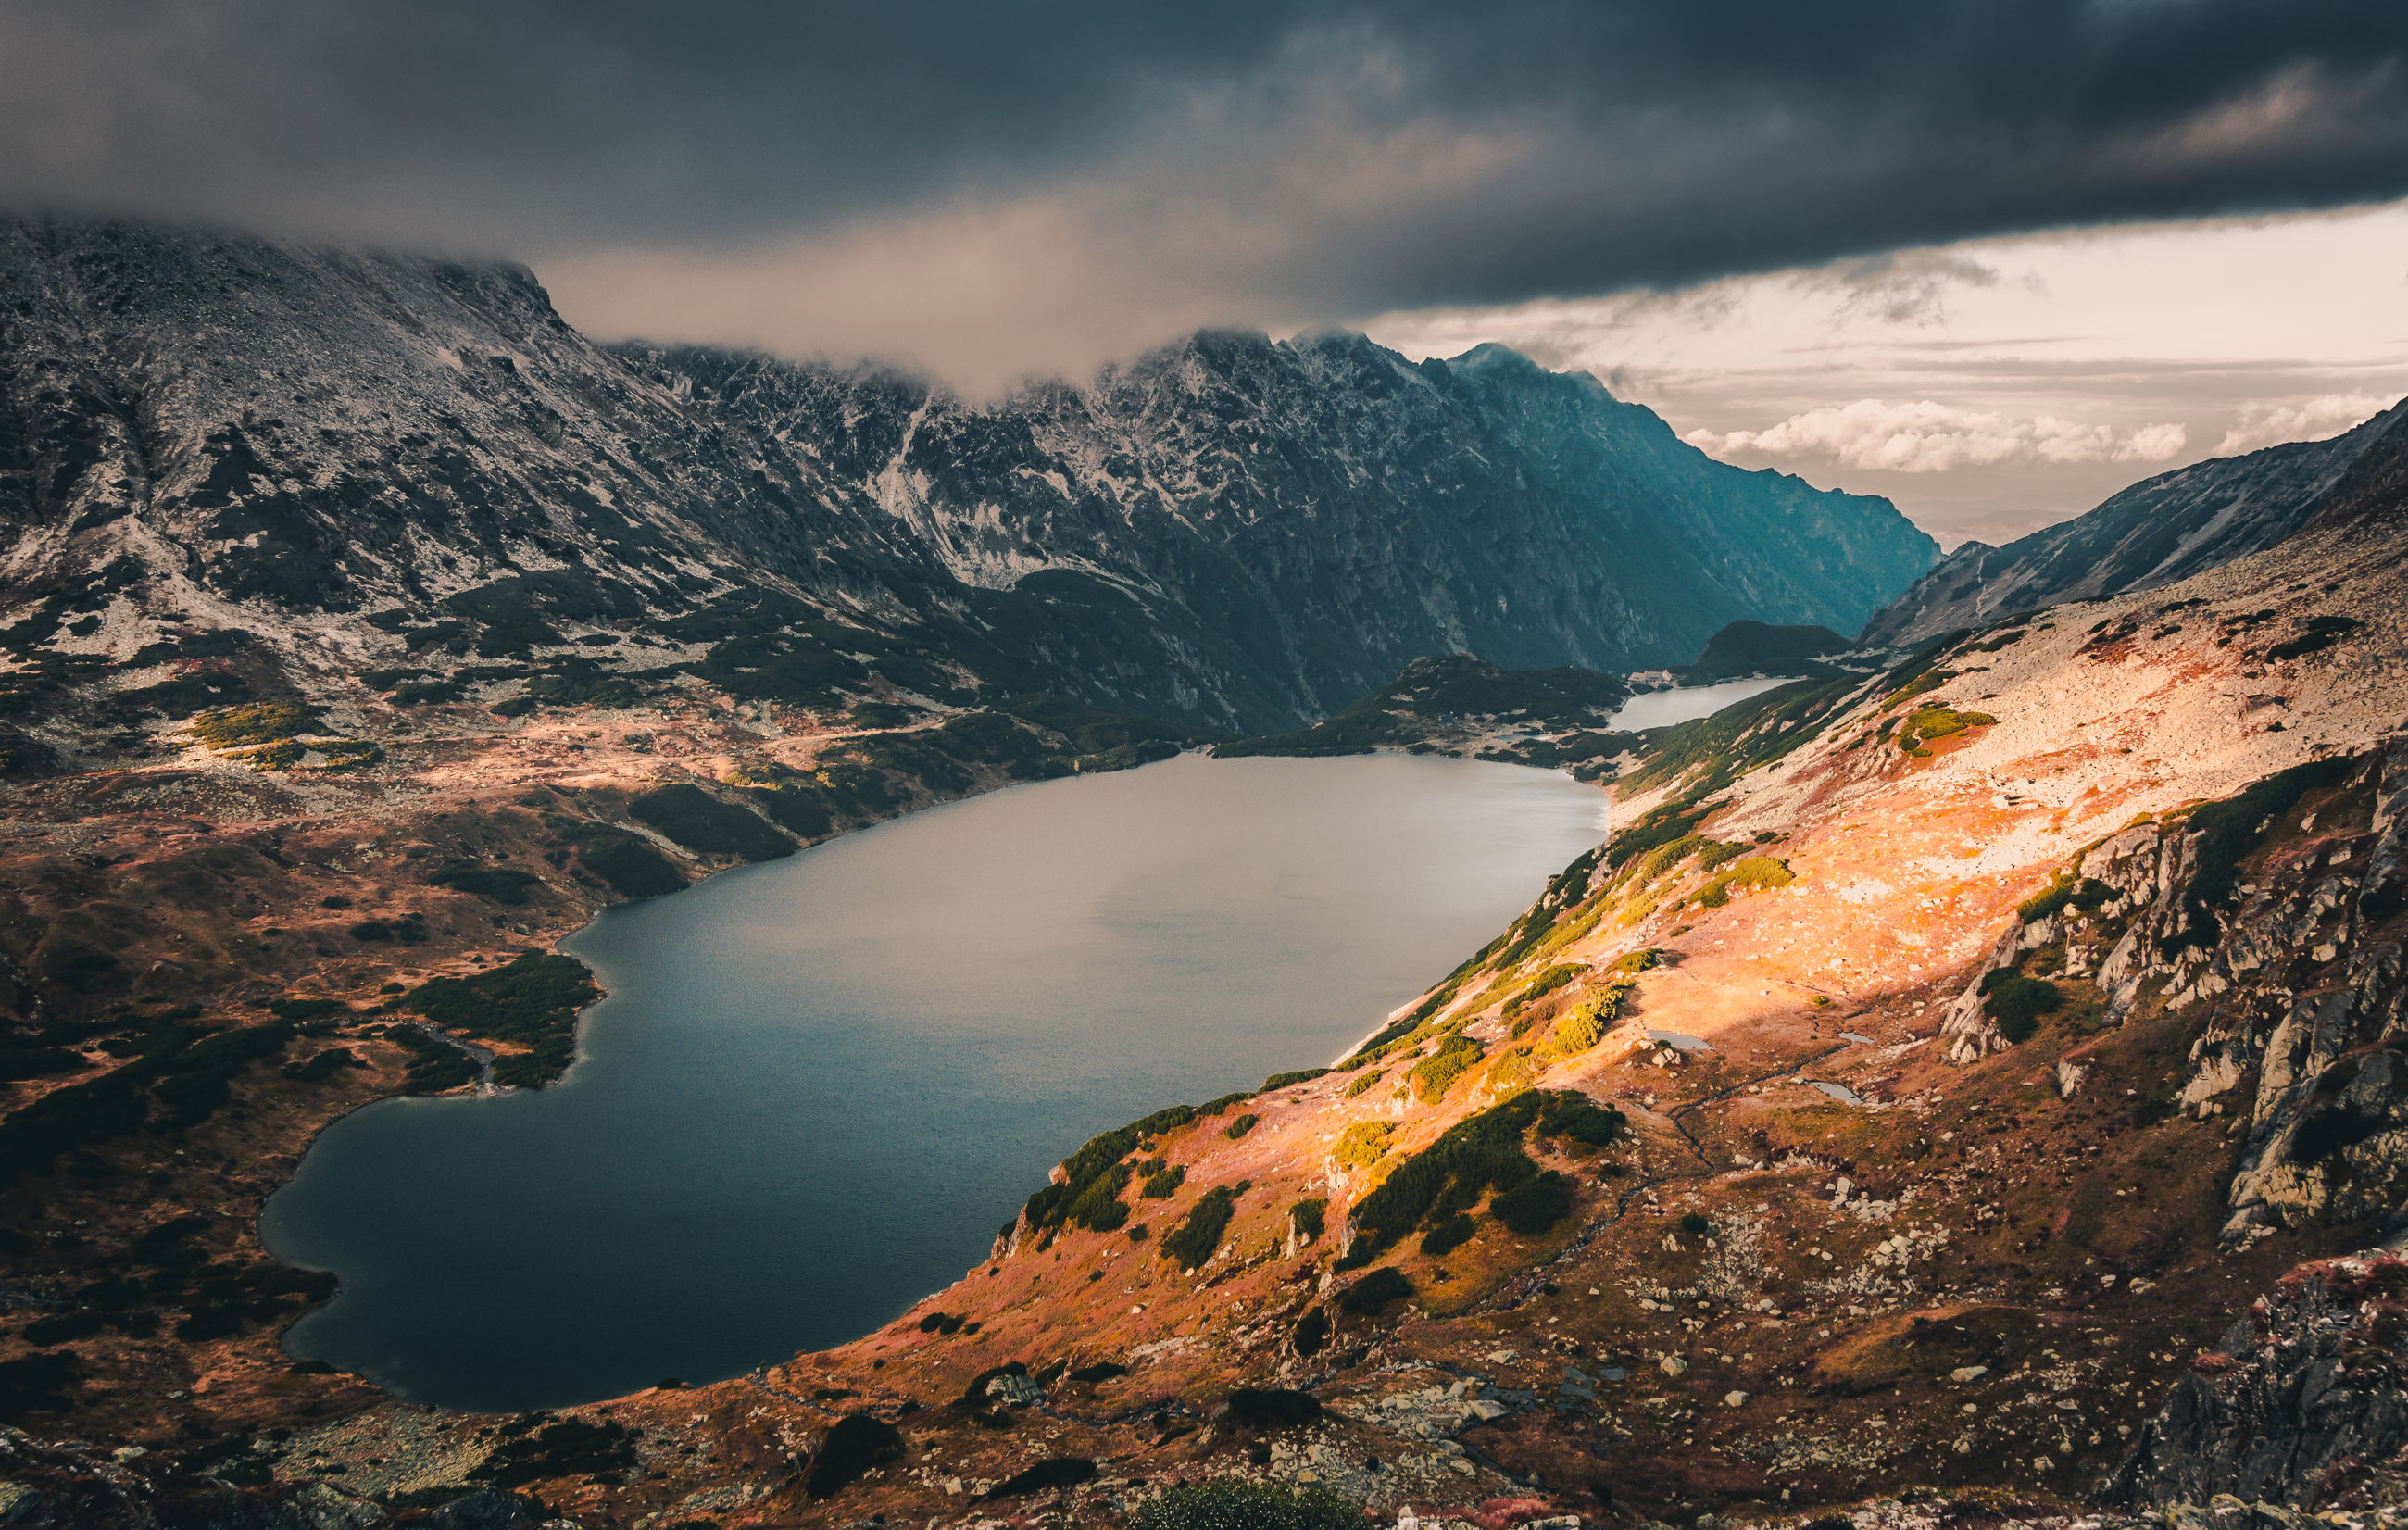 mountain, cloud - sky, scenics - nature, beauty in nature, sky, water, tranquil scene, tranquility, mountain range, no people, nature, idyllic, non-urban scene, environment, landscape, lake, geology, remote, outdoors, snowcapped mountain